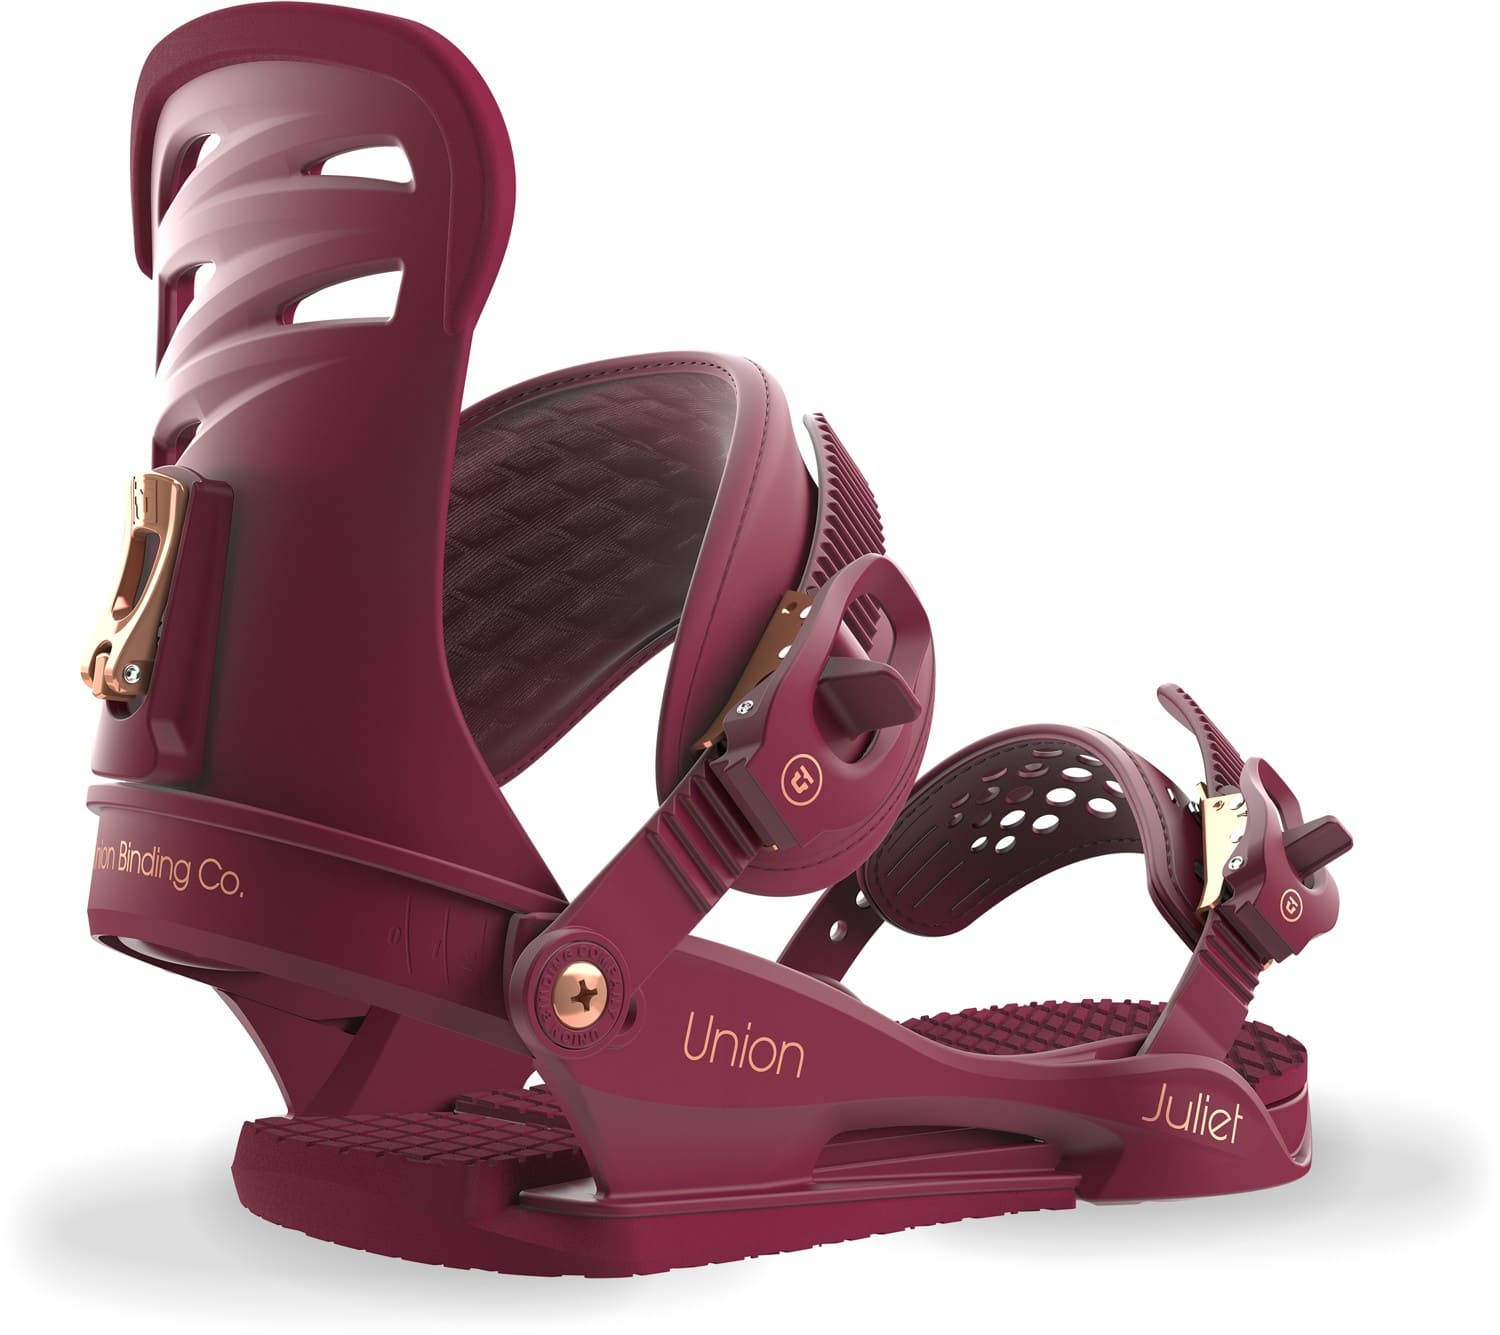 Union Juliet Women's Snowboard Bindings 2018